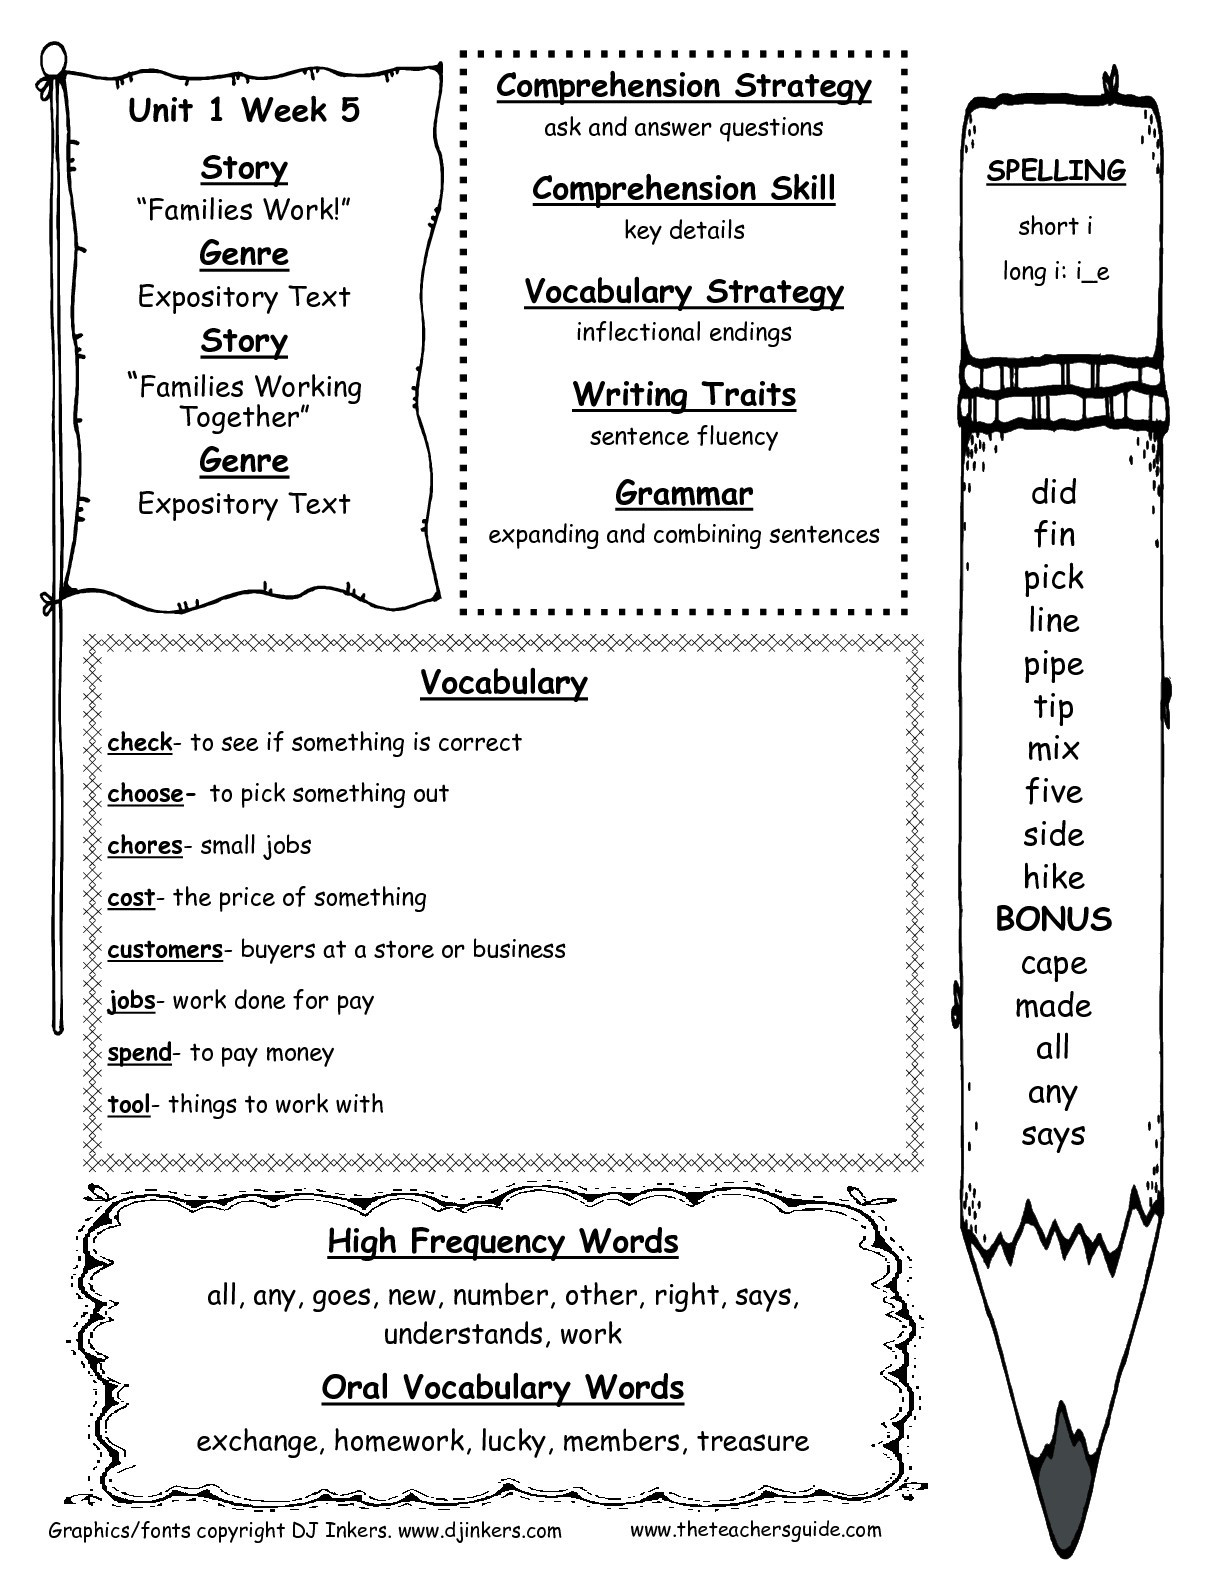 Inflected Endings Worksheets 2nd Grade Wonders Second Grade Unit E Week Five Printouts